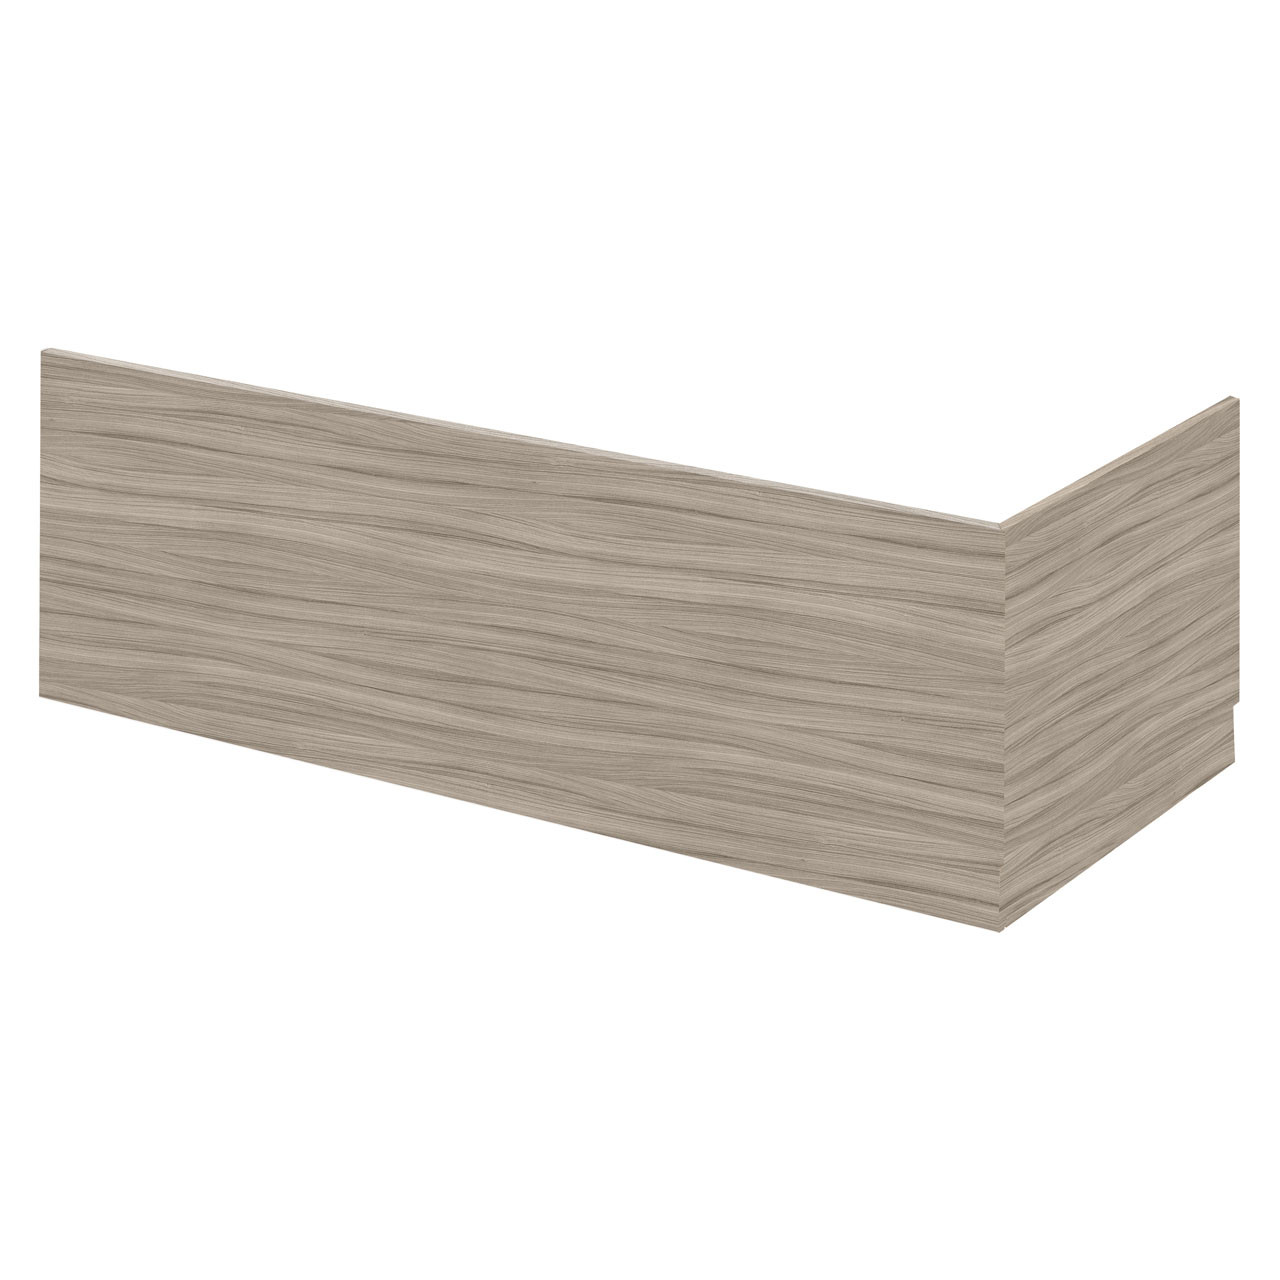 Premier Athena Driftwood 1800mm Front Bath Panel - MPC107